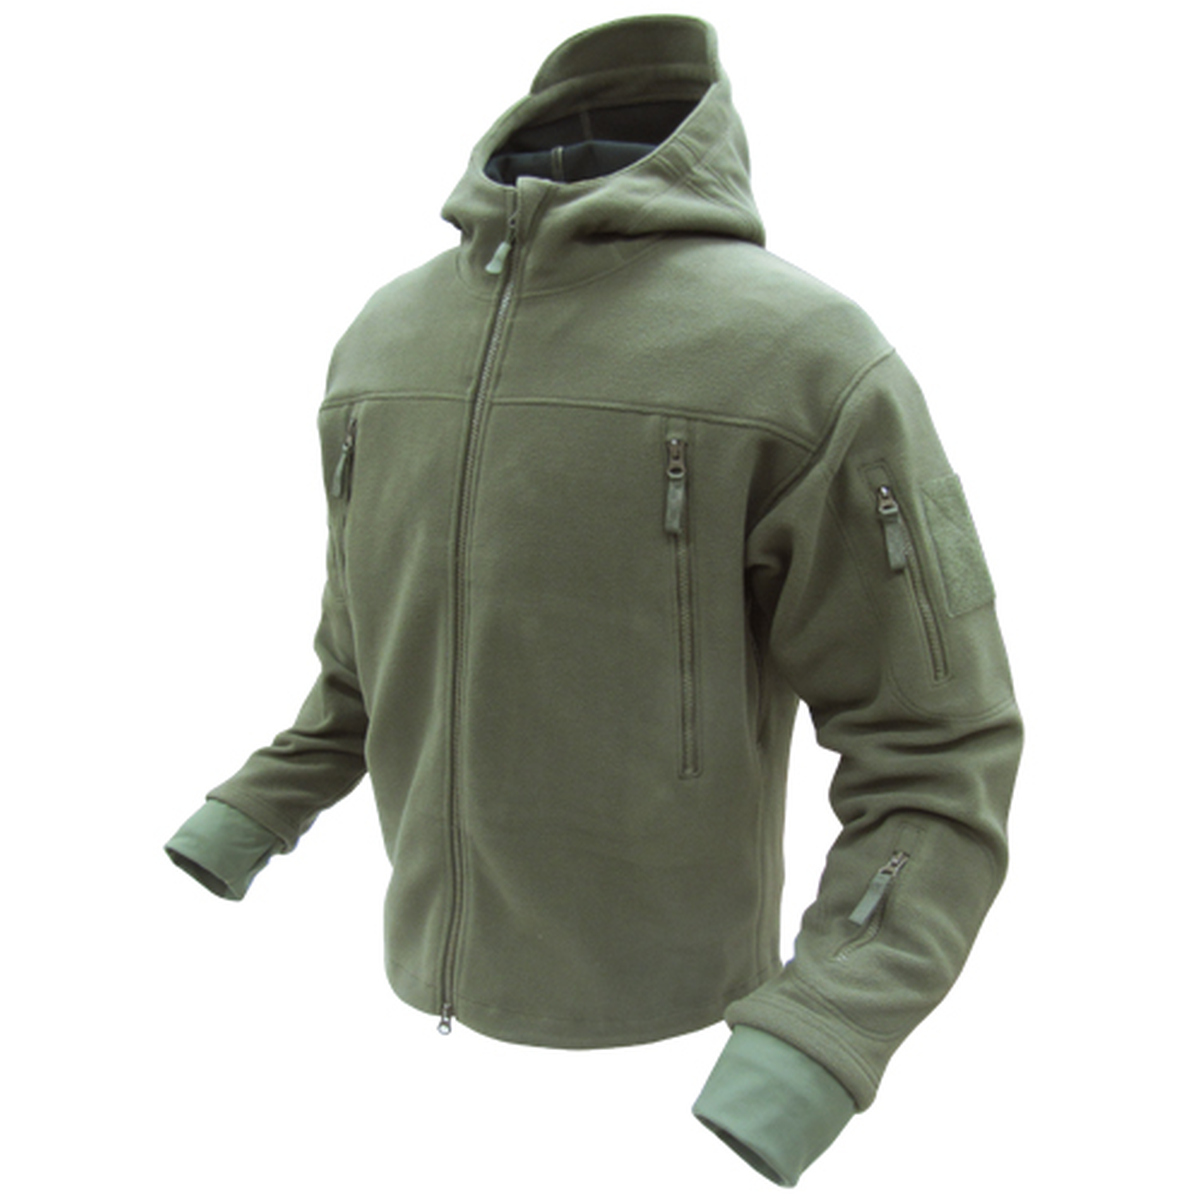 Sierra Hooded Fleece Jacket